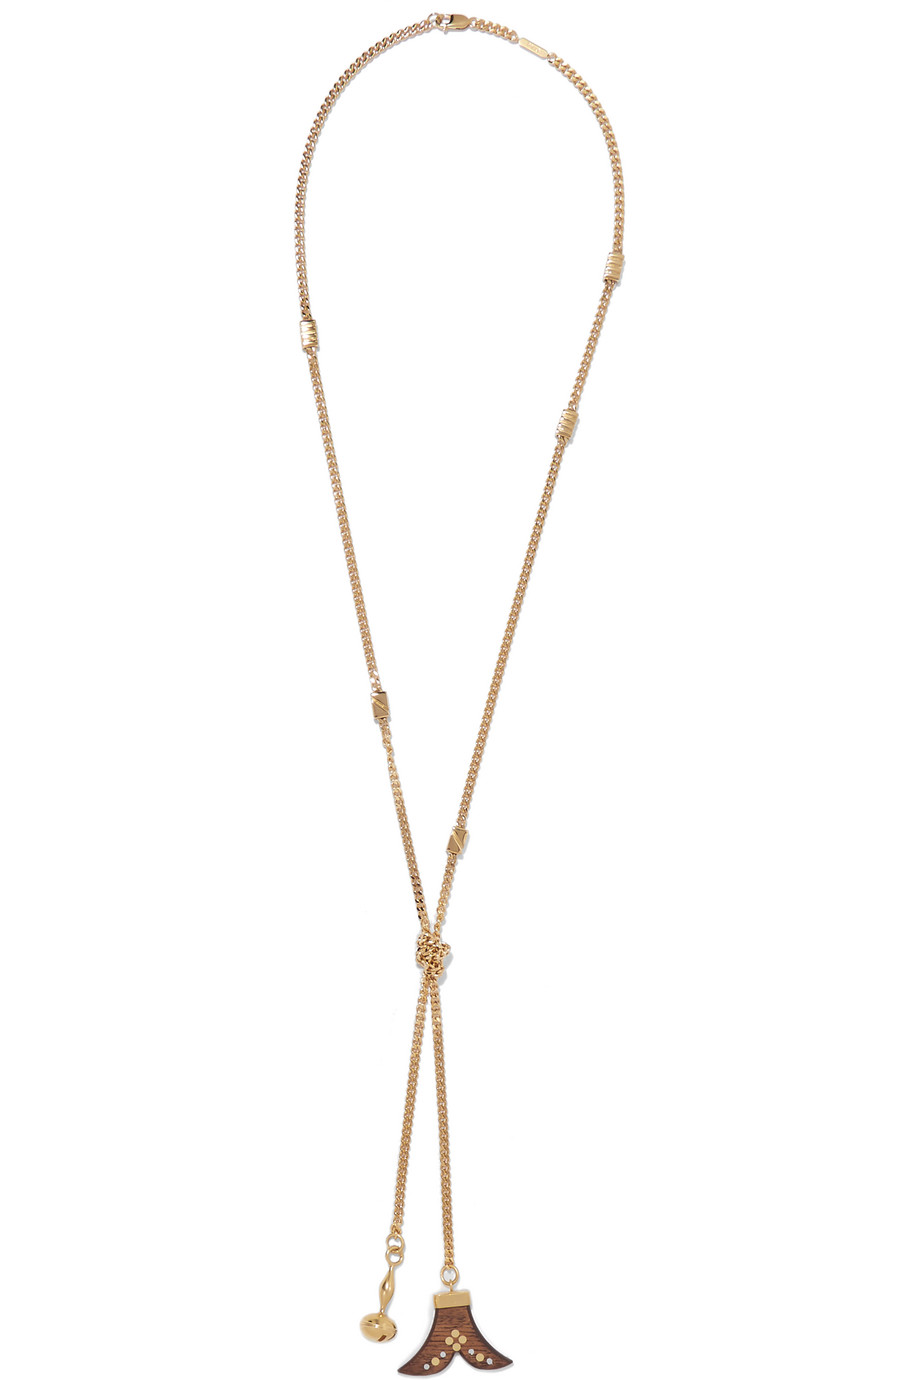 Chloé Gold-Plated Wood Necklace